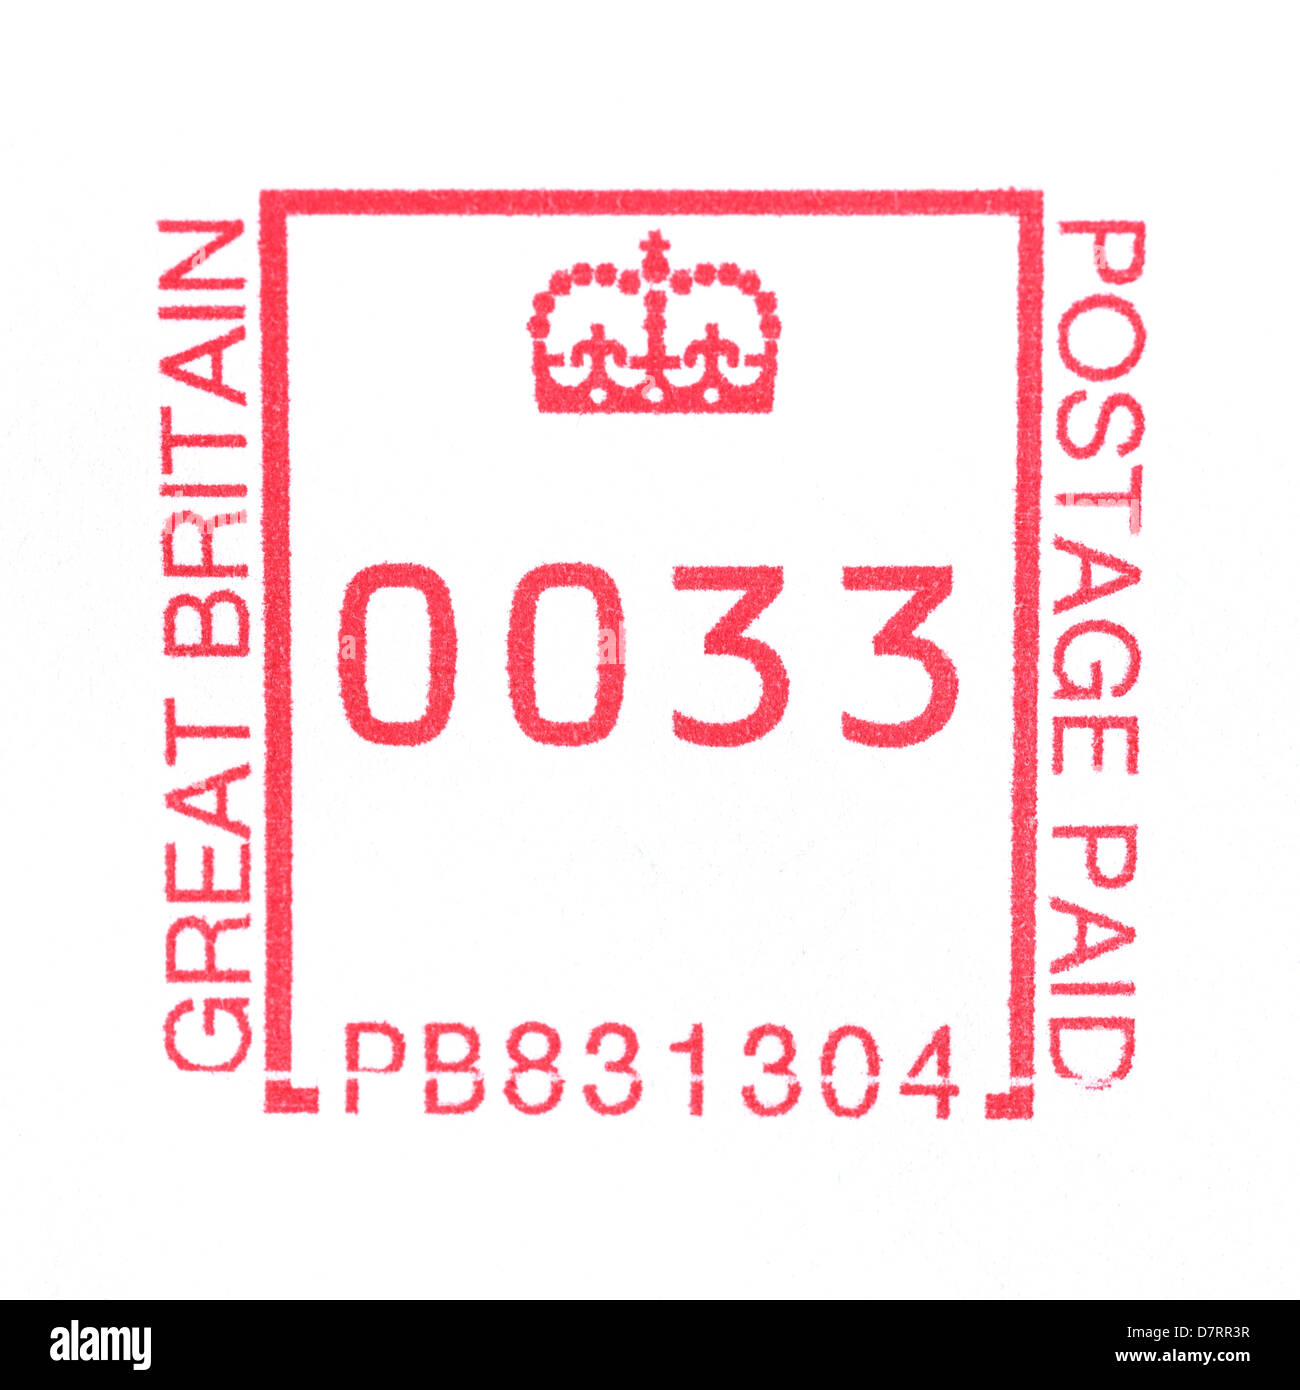 A stamp made by a Royal Mail franking machine showing 33 pence postage - Stock Image